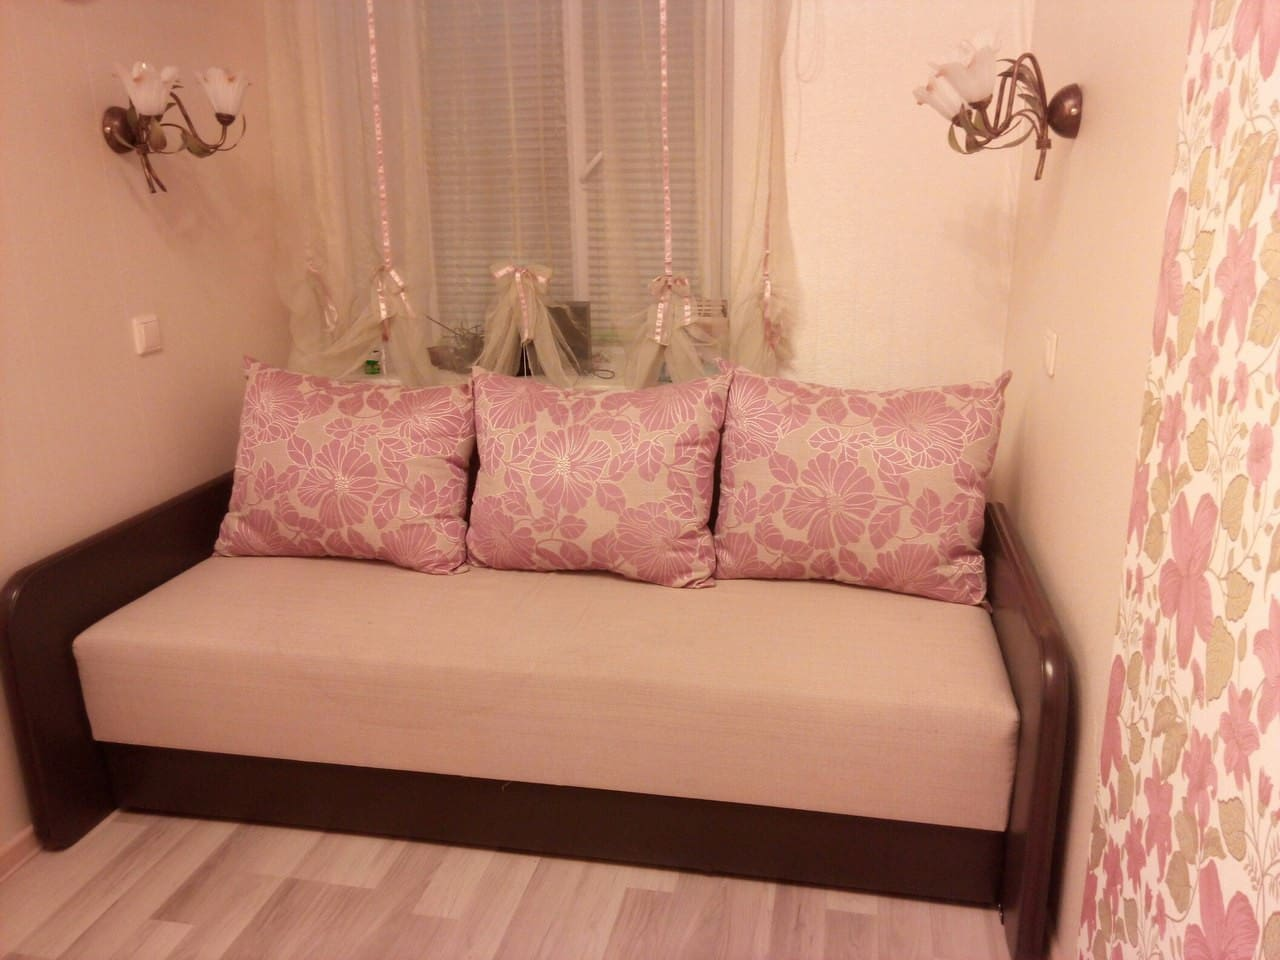 Bedroom with a bed for 2 persons